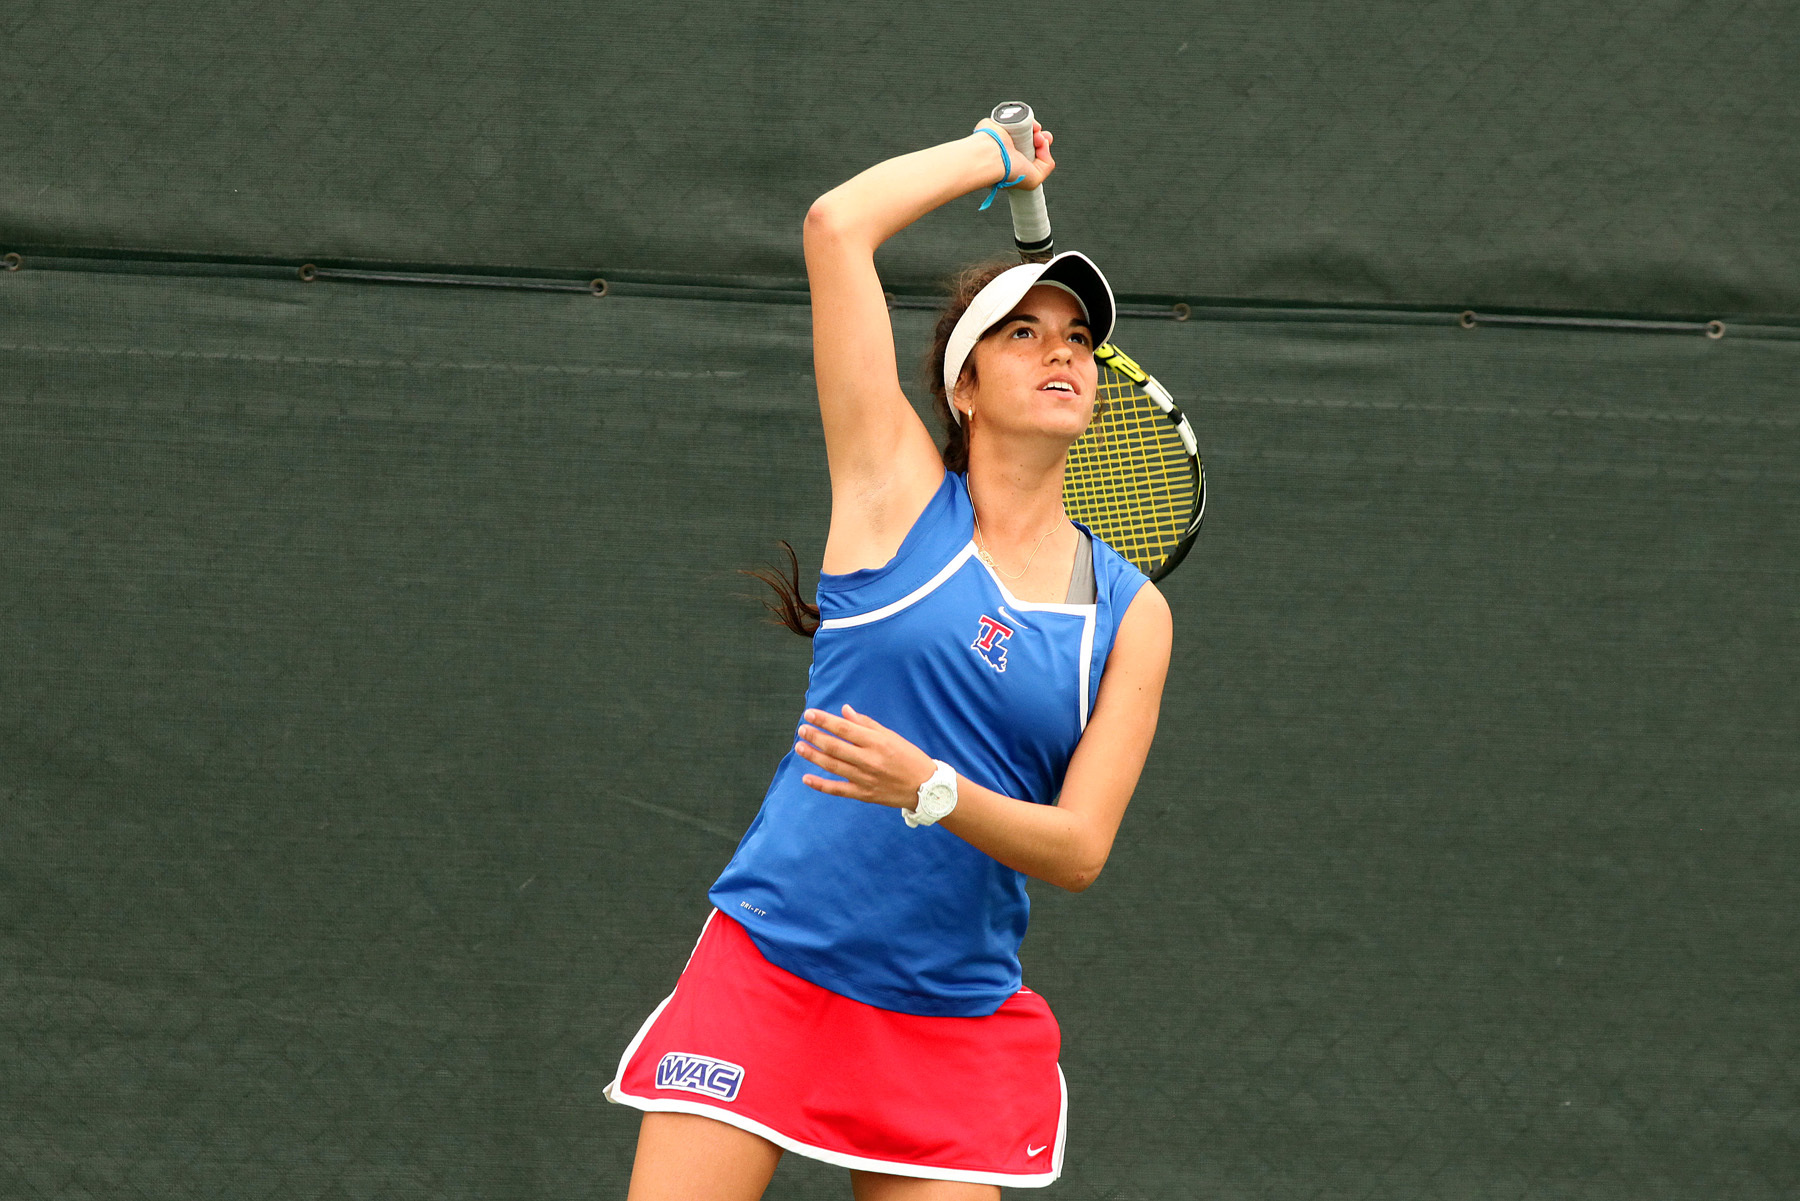 Taly Merker had the clinching point in the win over UTSA